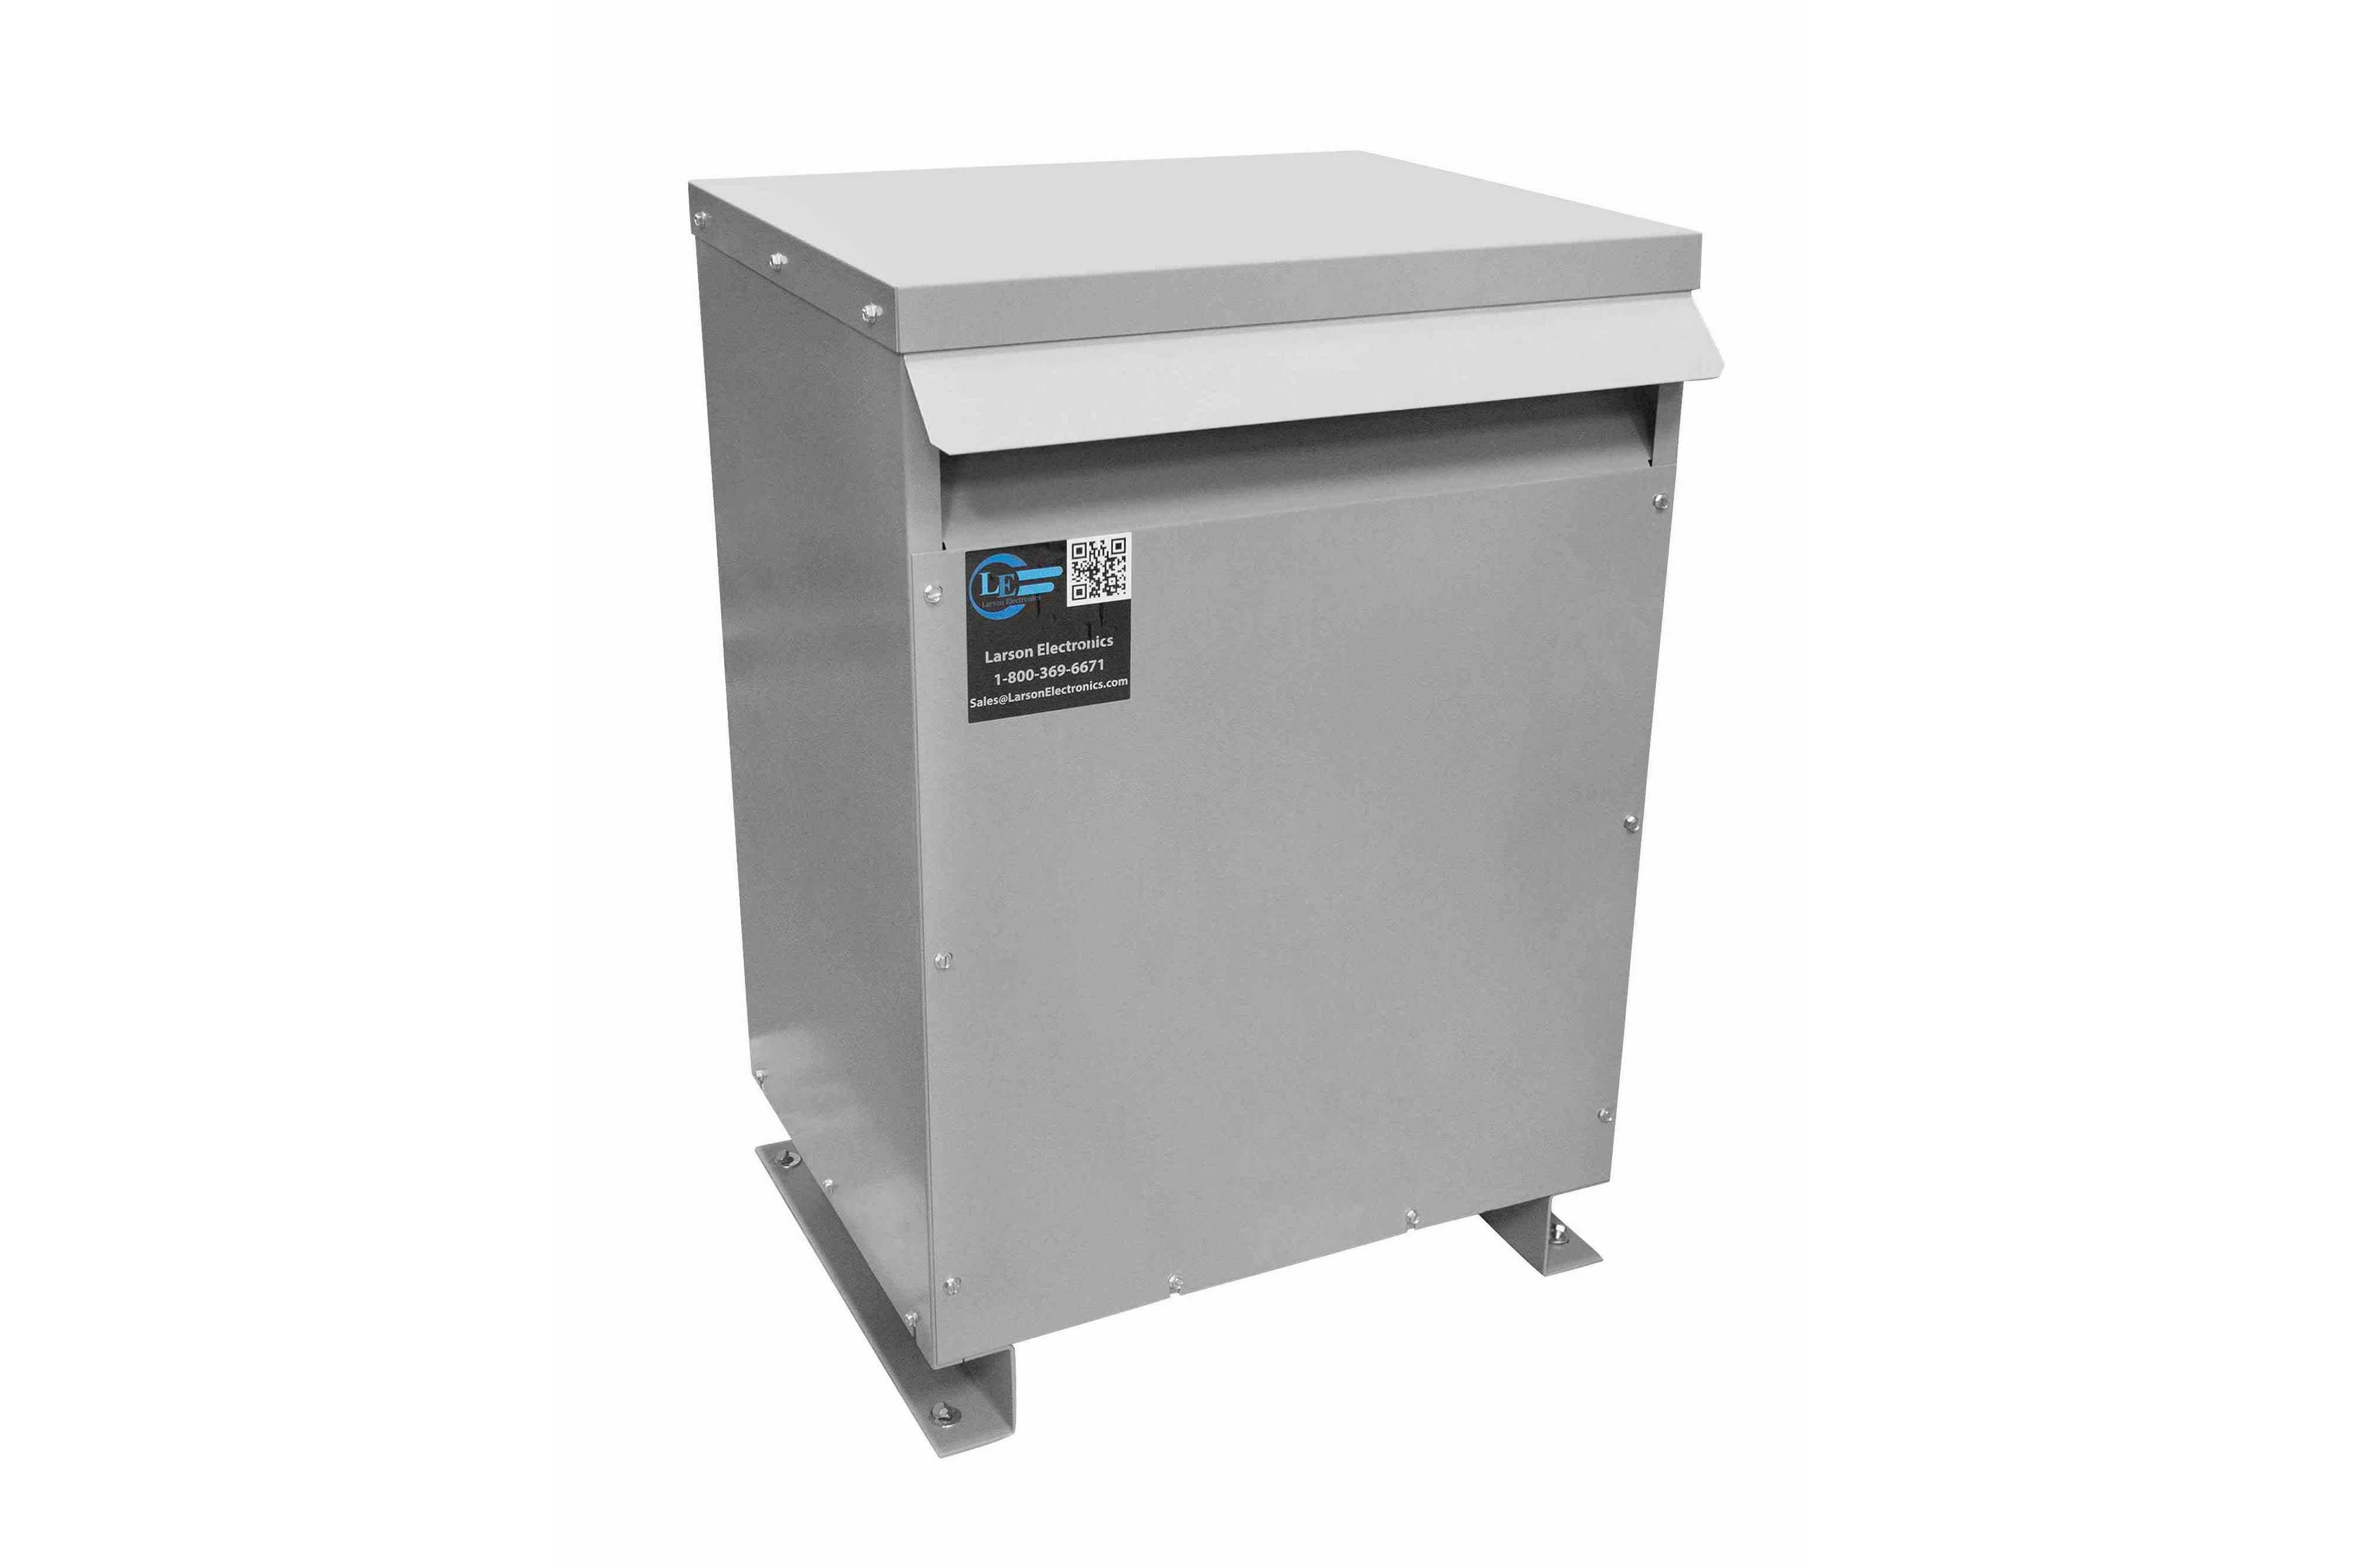 112.5 kVA 3PH Isolation Transformer, 240V Wye Primary, 208V Delta Secondary, N3R, Ventilated, 60 Hz